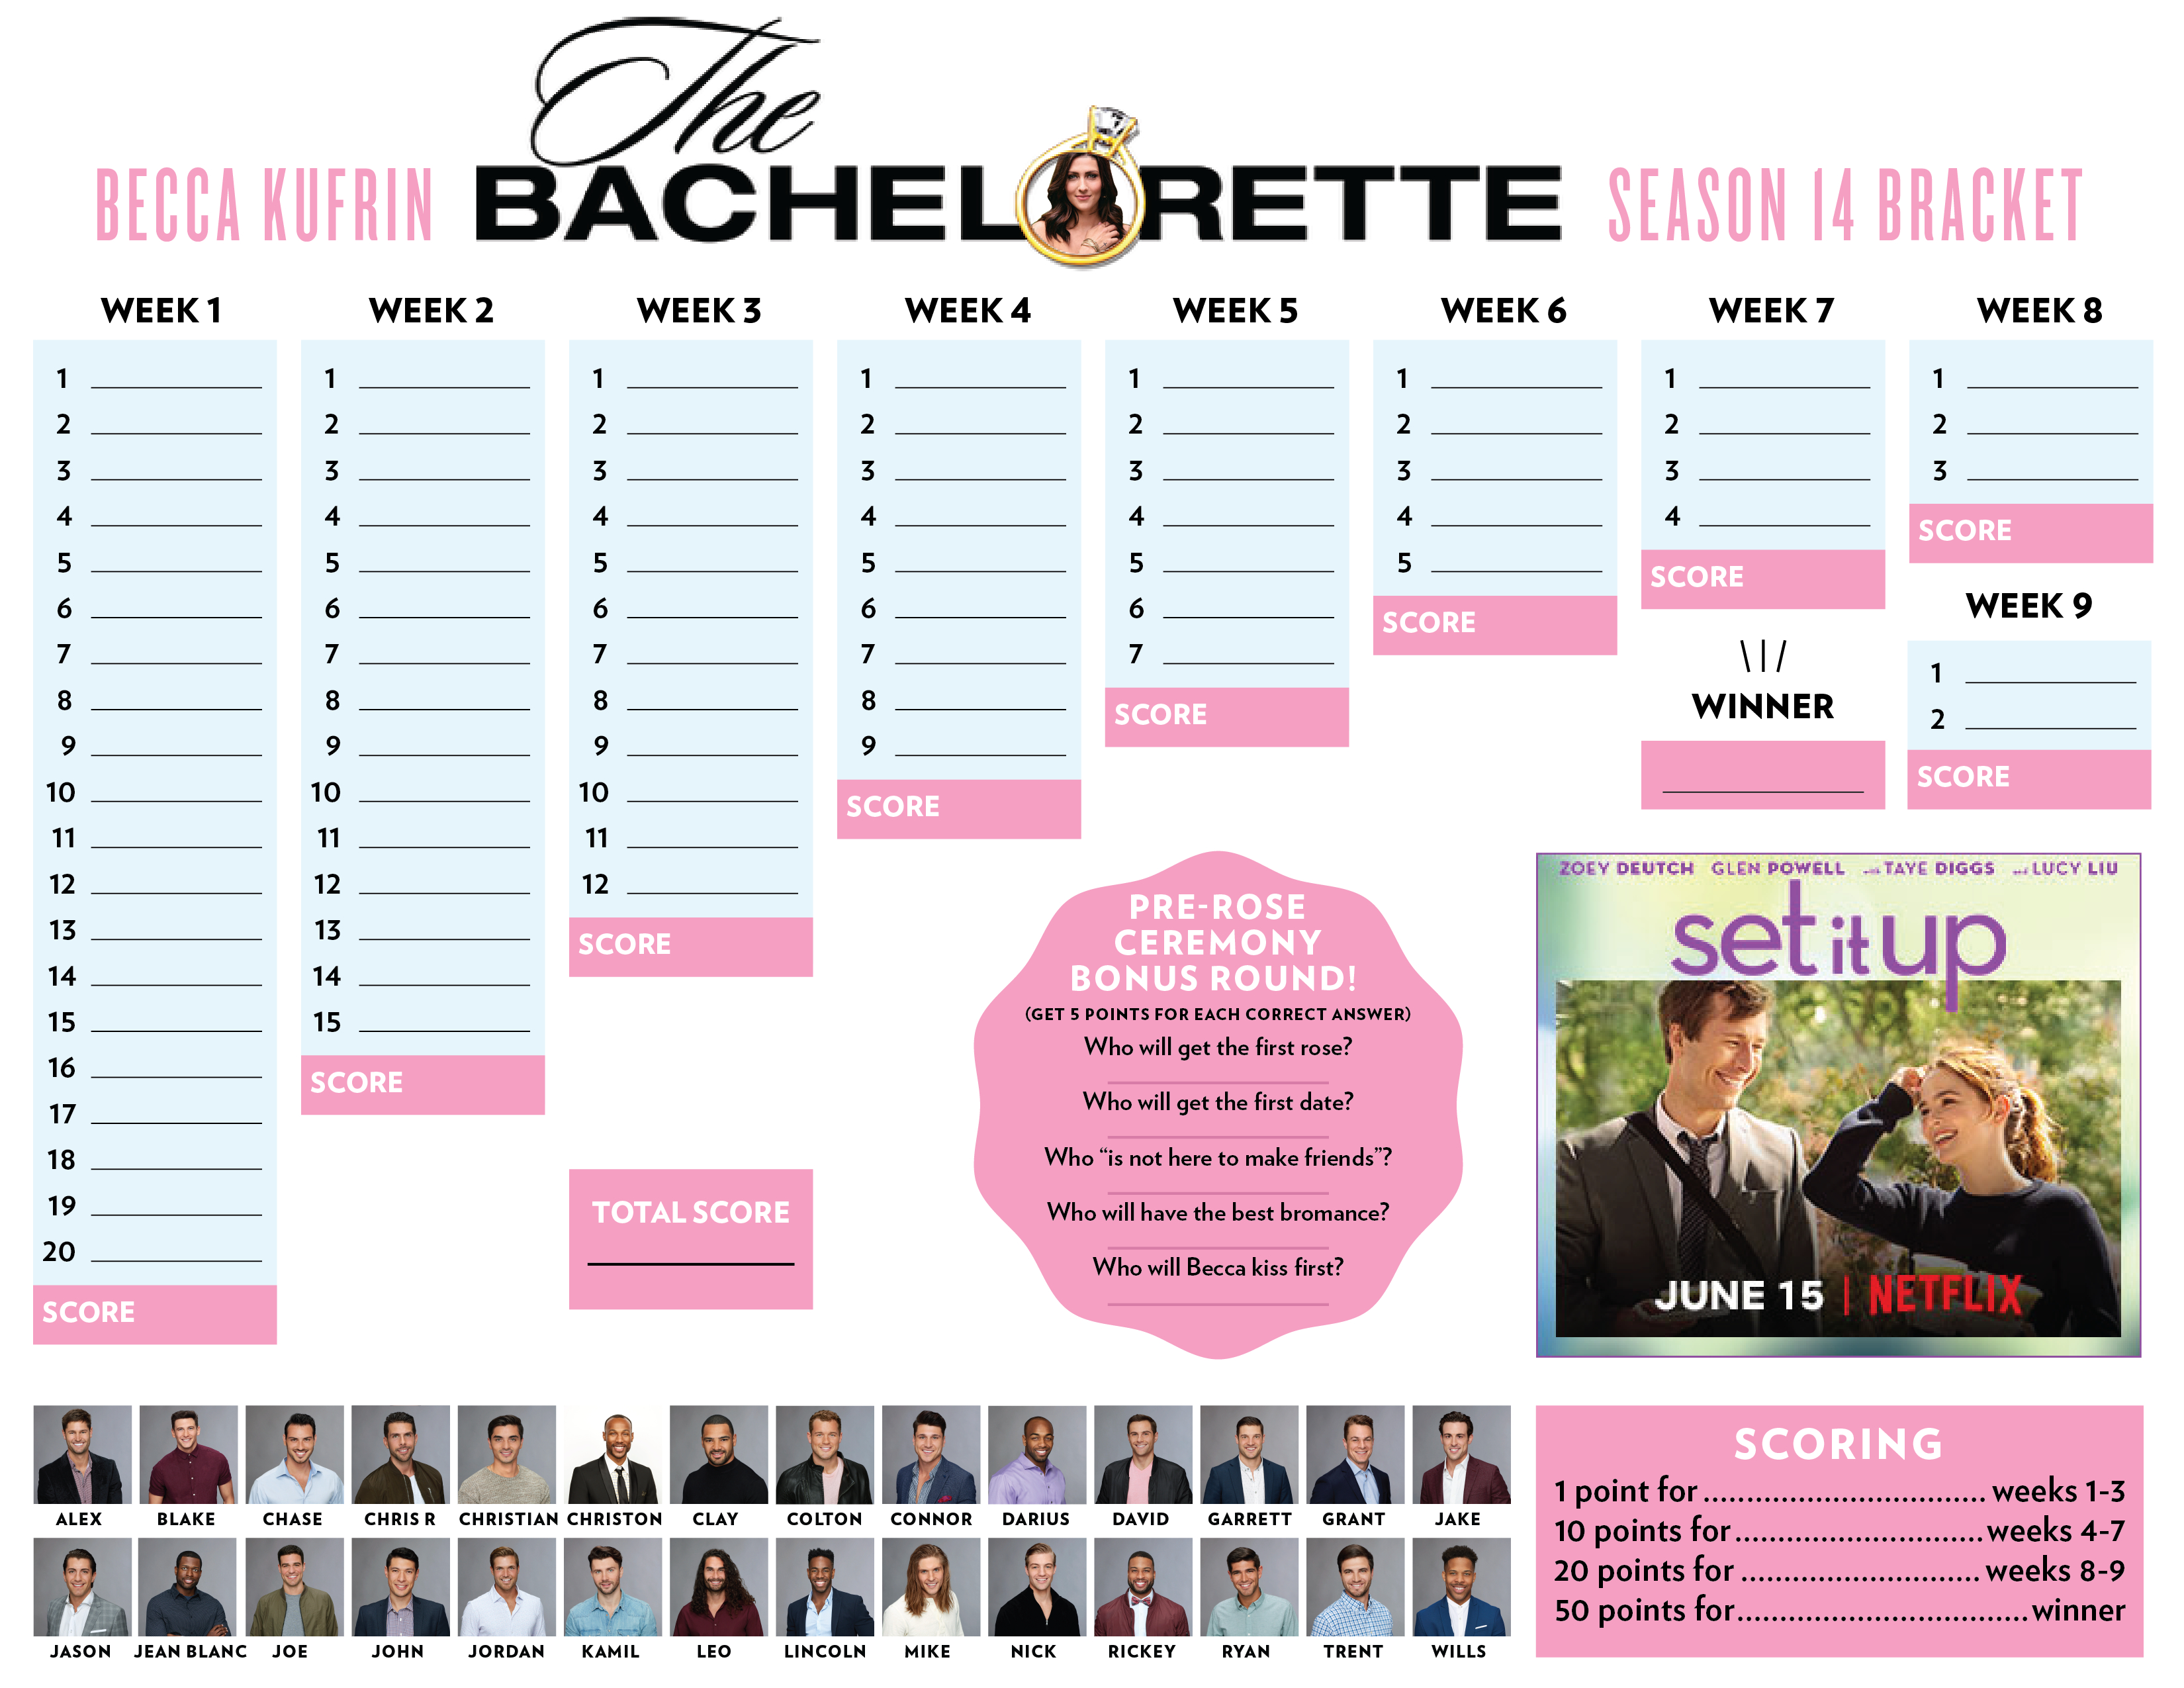 Bachelorette Bracket For Becca Kufrin's Season 14 Contestants in Bachelorett Fill In Blank Templets